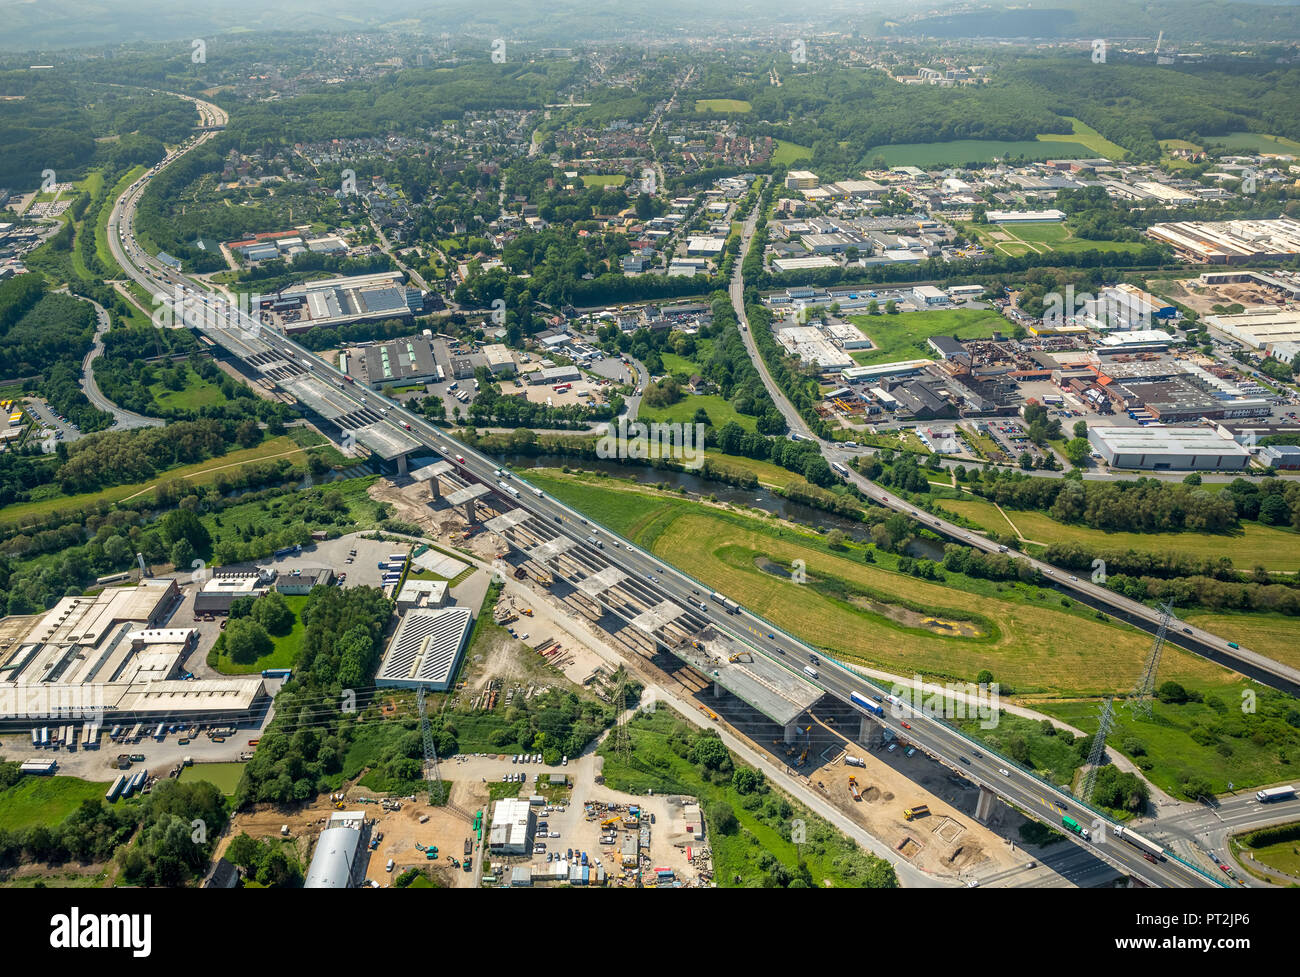 Demolition and rebuilding of the Lenntal bridge, Sauerland line, motorway A45, traffic infrastructure, construction work, Hagen, Ruhr area, North Rhine-Westphalia, Germany - Stock Image